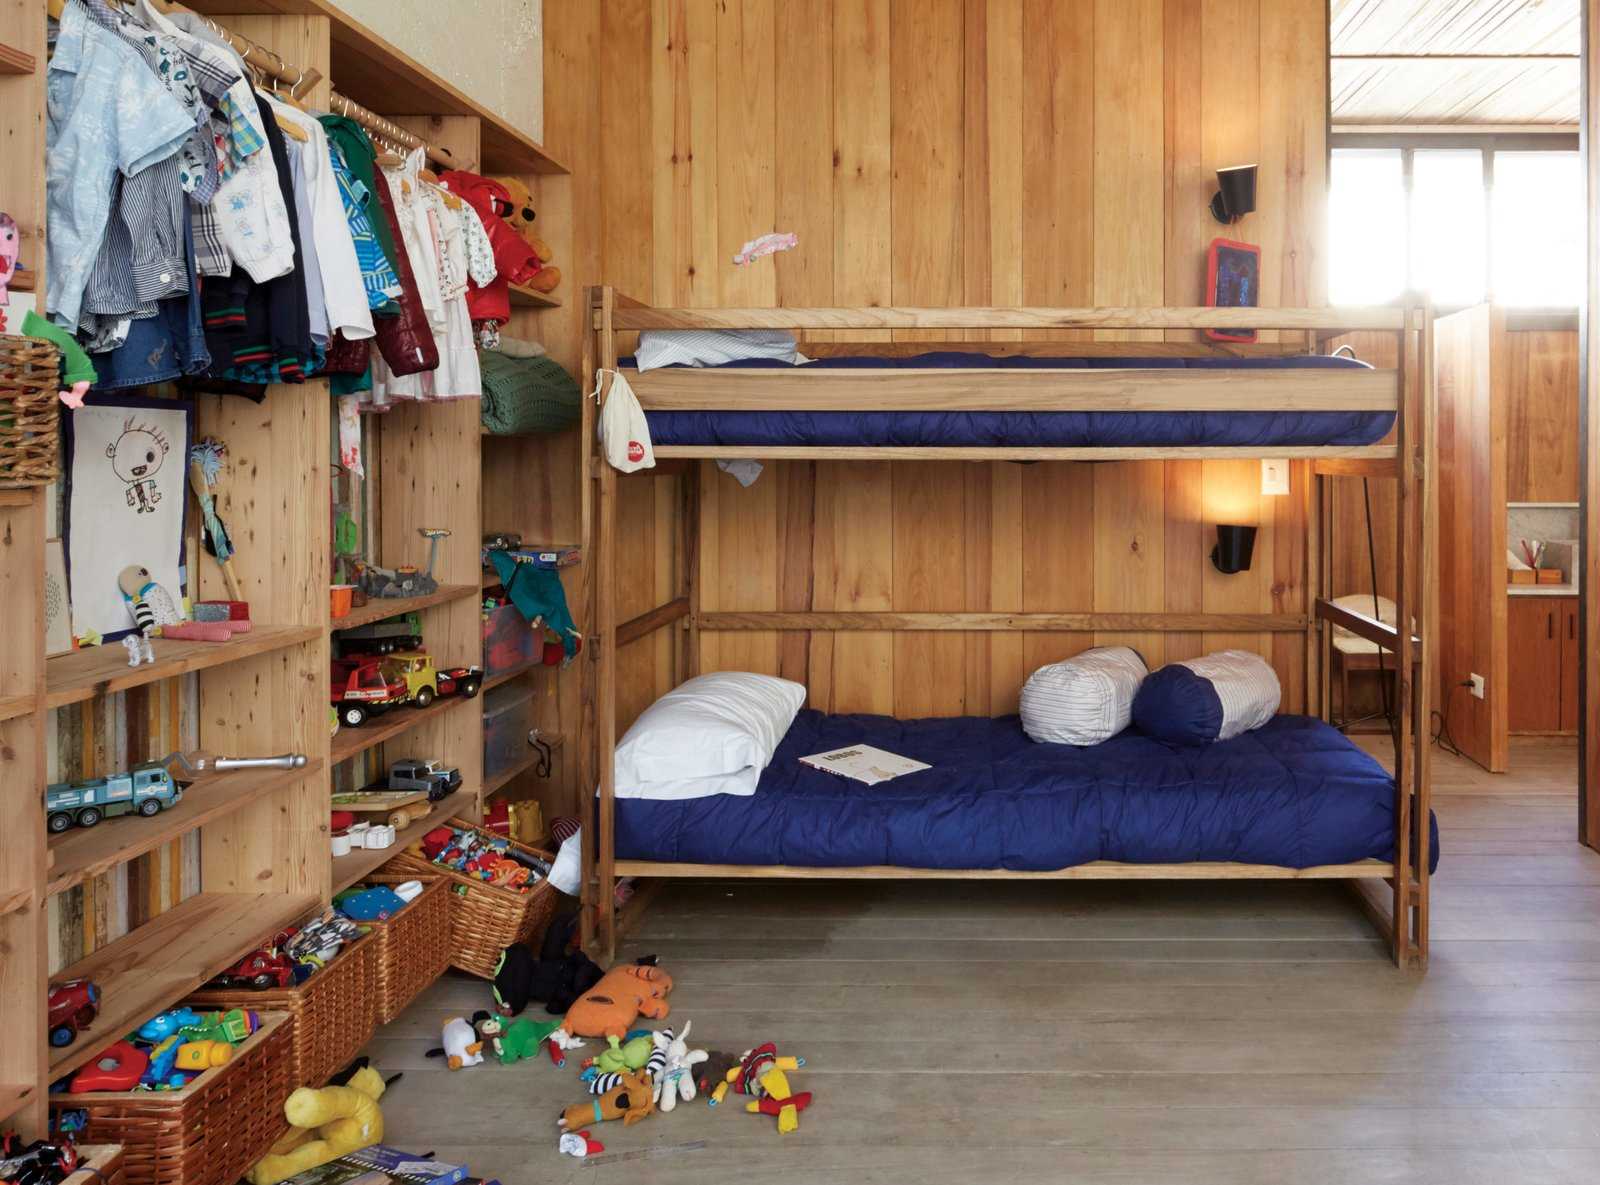 Kids Room, Bedroom Room Type, Bed, Bunks, Pre-Teen Age, Shelves, Light Hardwood Floor, Boy Gender, and Toddler Age The children's bedroom features NET bunk beds and storage baskets from Mono, the design shop of Sticotti's wife, Mercedes Hernáez.  Photo 5 of 10 in One-of-a-Kind Furniture Fills This Delightfully Serene Buenos Aires Home